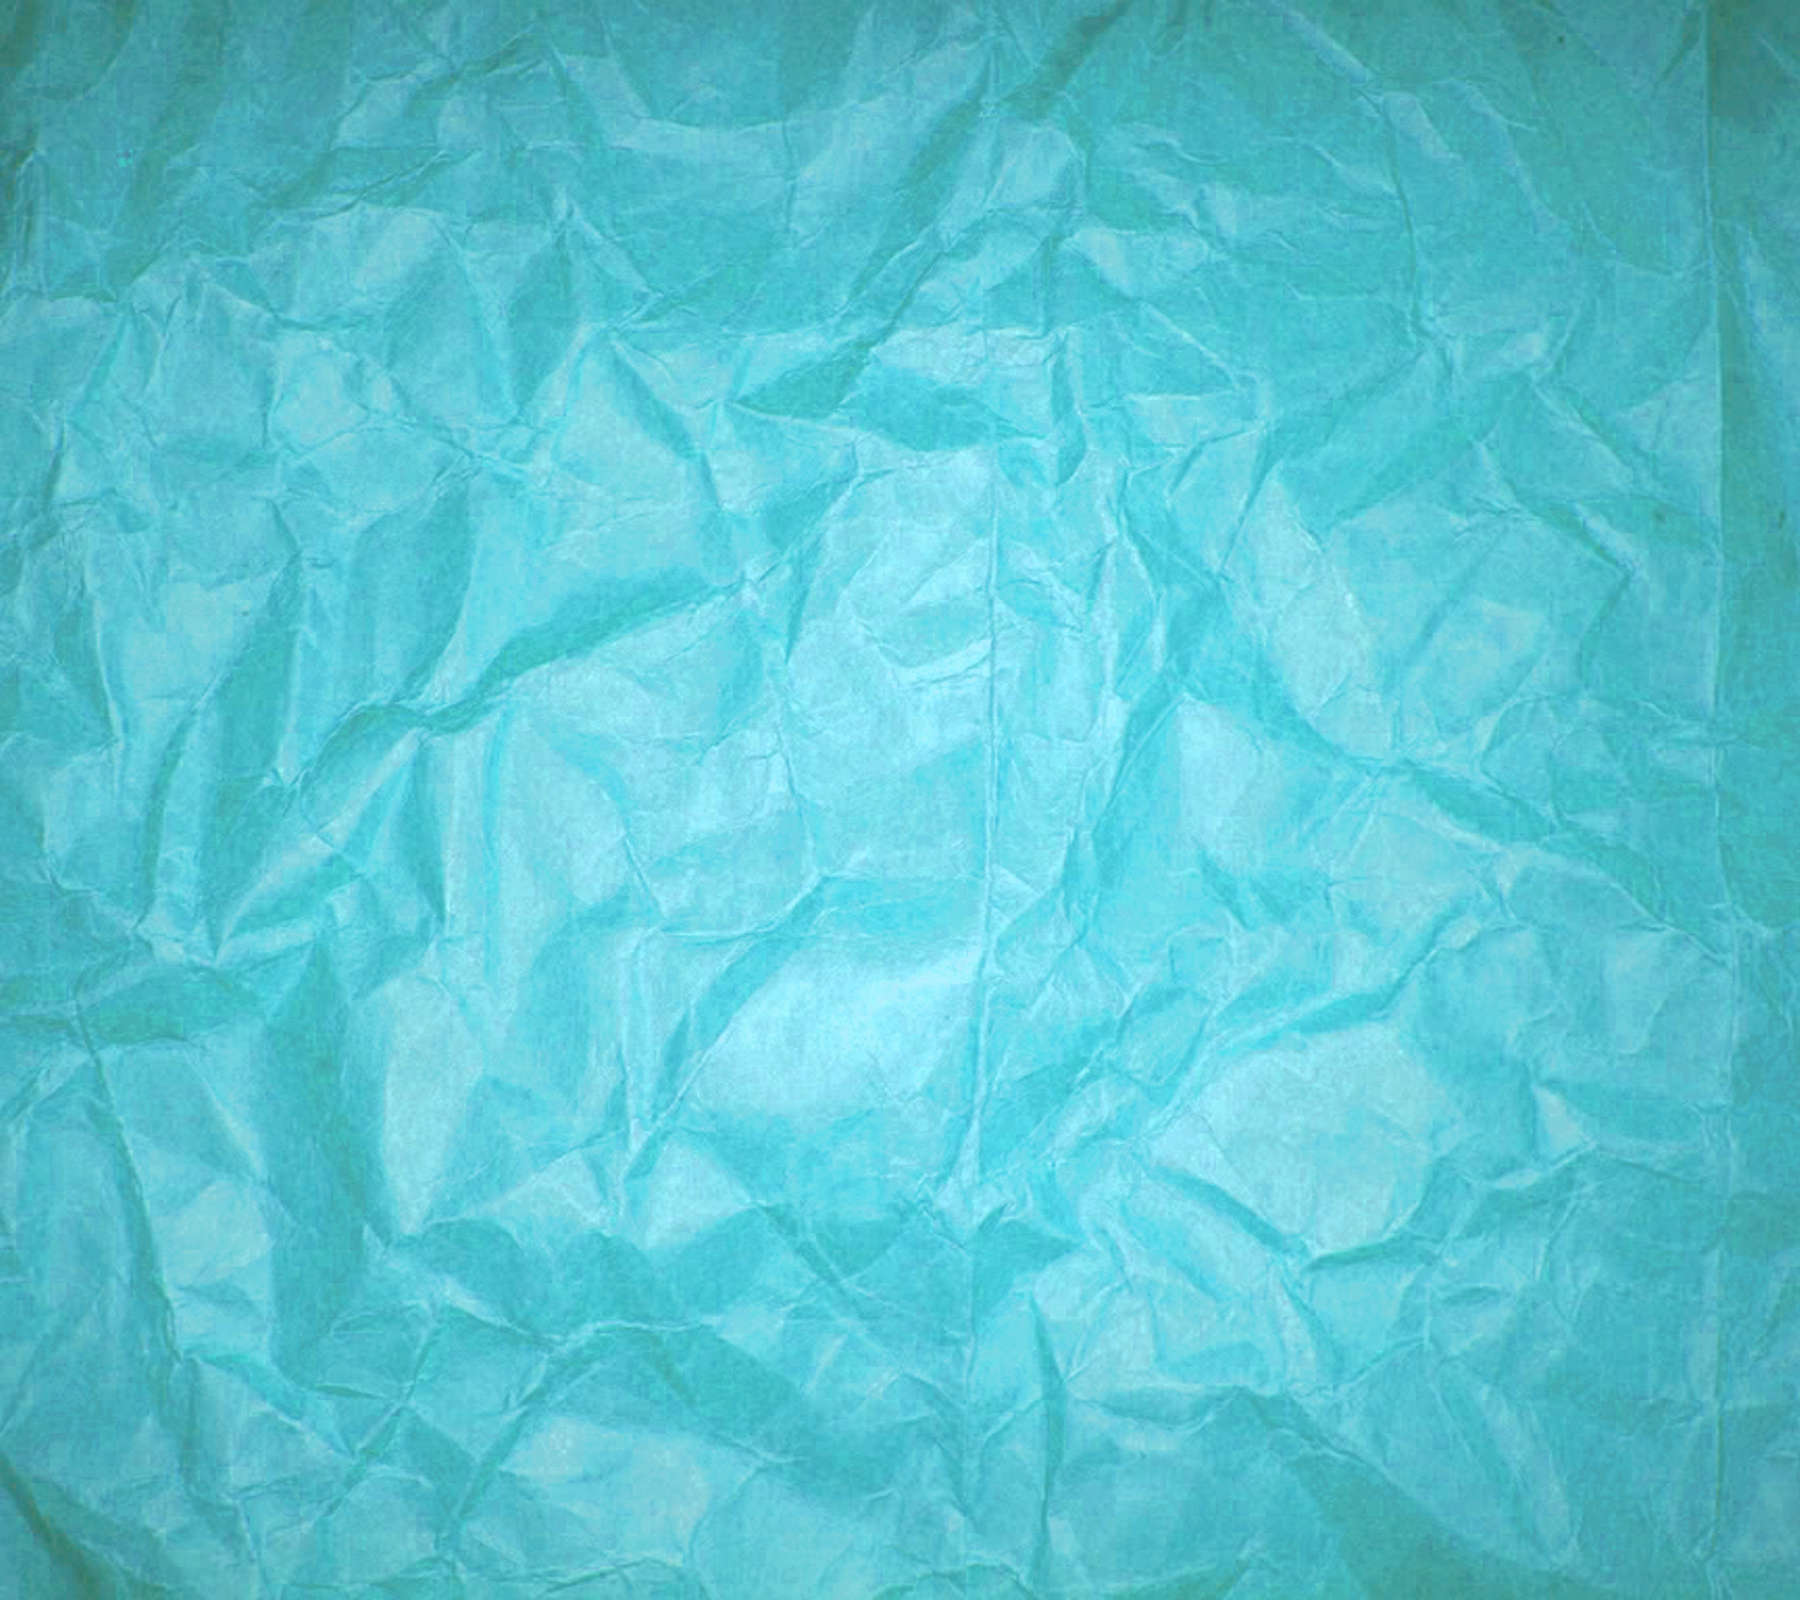 Wrinkled teal paper background 1800x1600 background image for Teal wallpaper